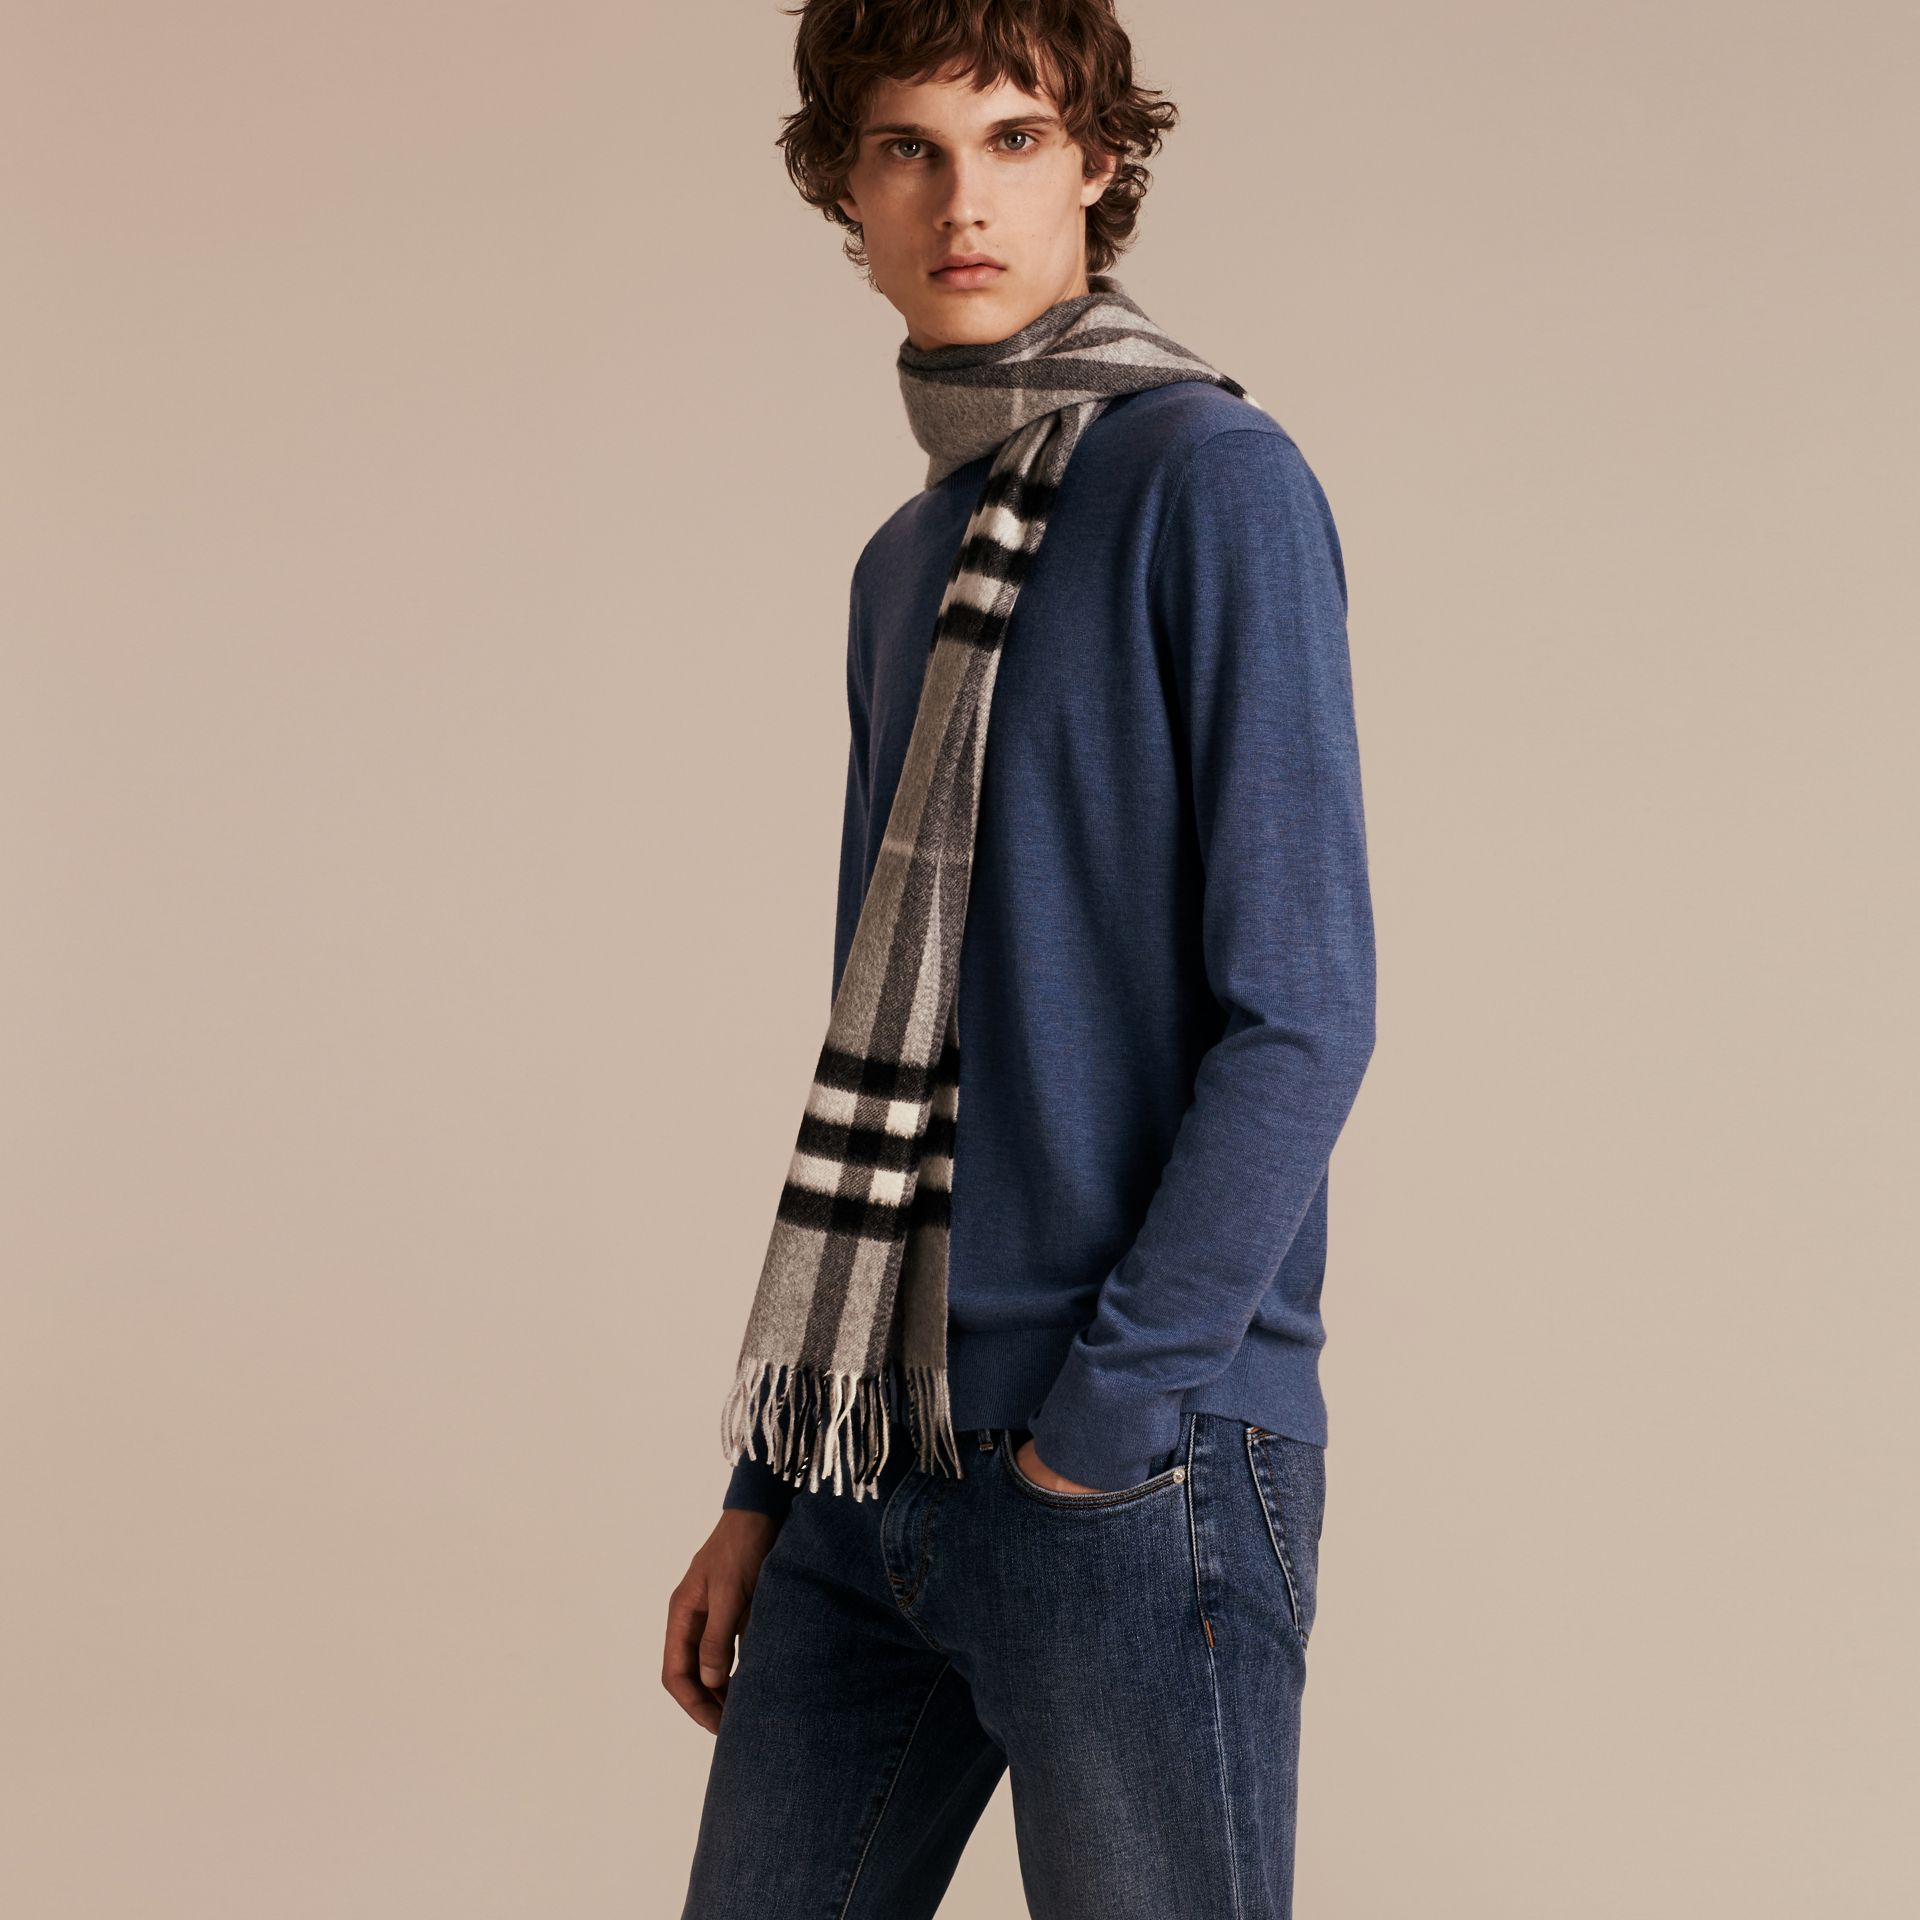 Lightweight Crew Neck Cashmere Sweater with Check Trim in Dusty Blue - Men | Burberry Canada - gallery image 6